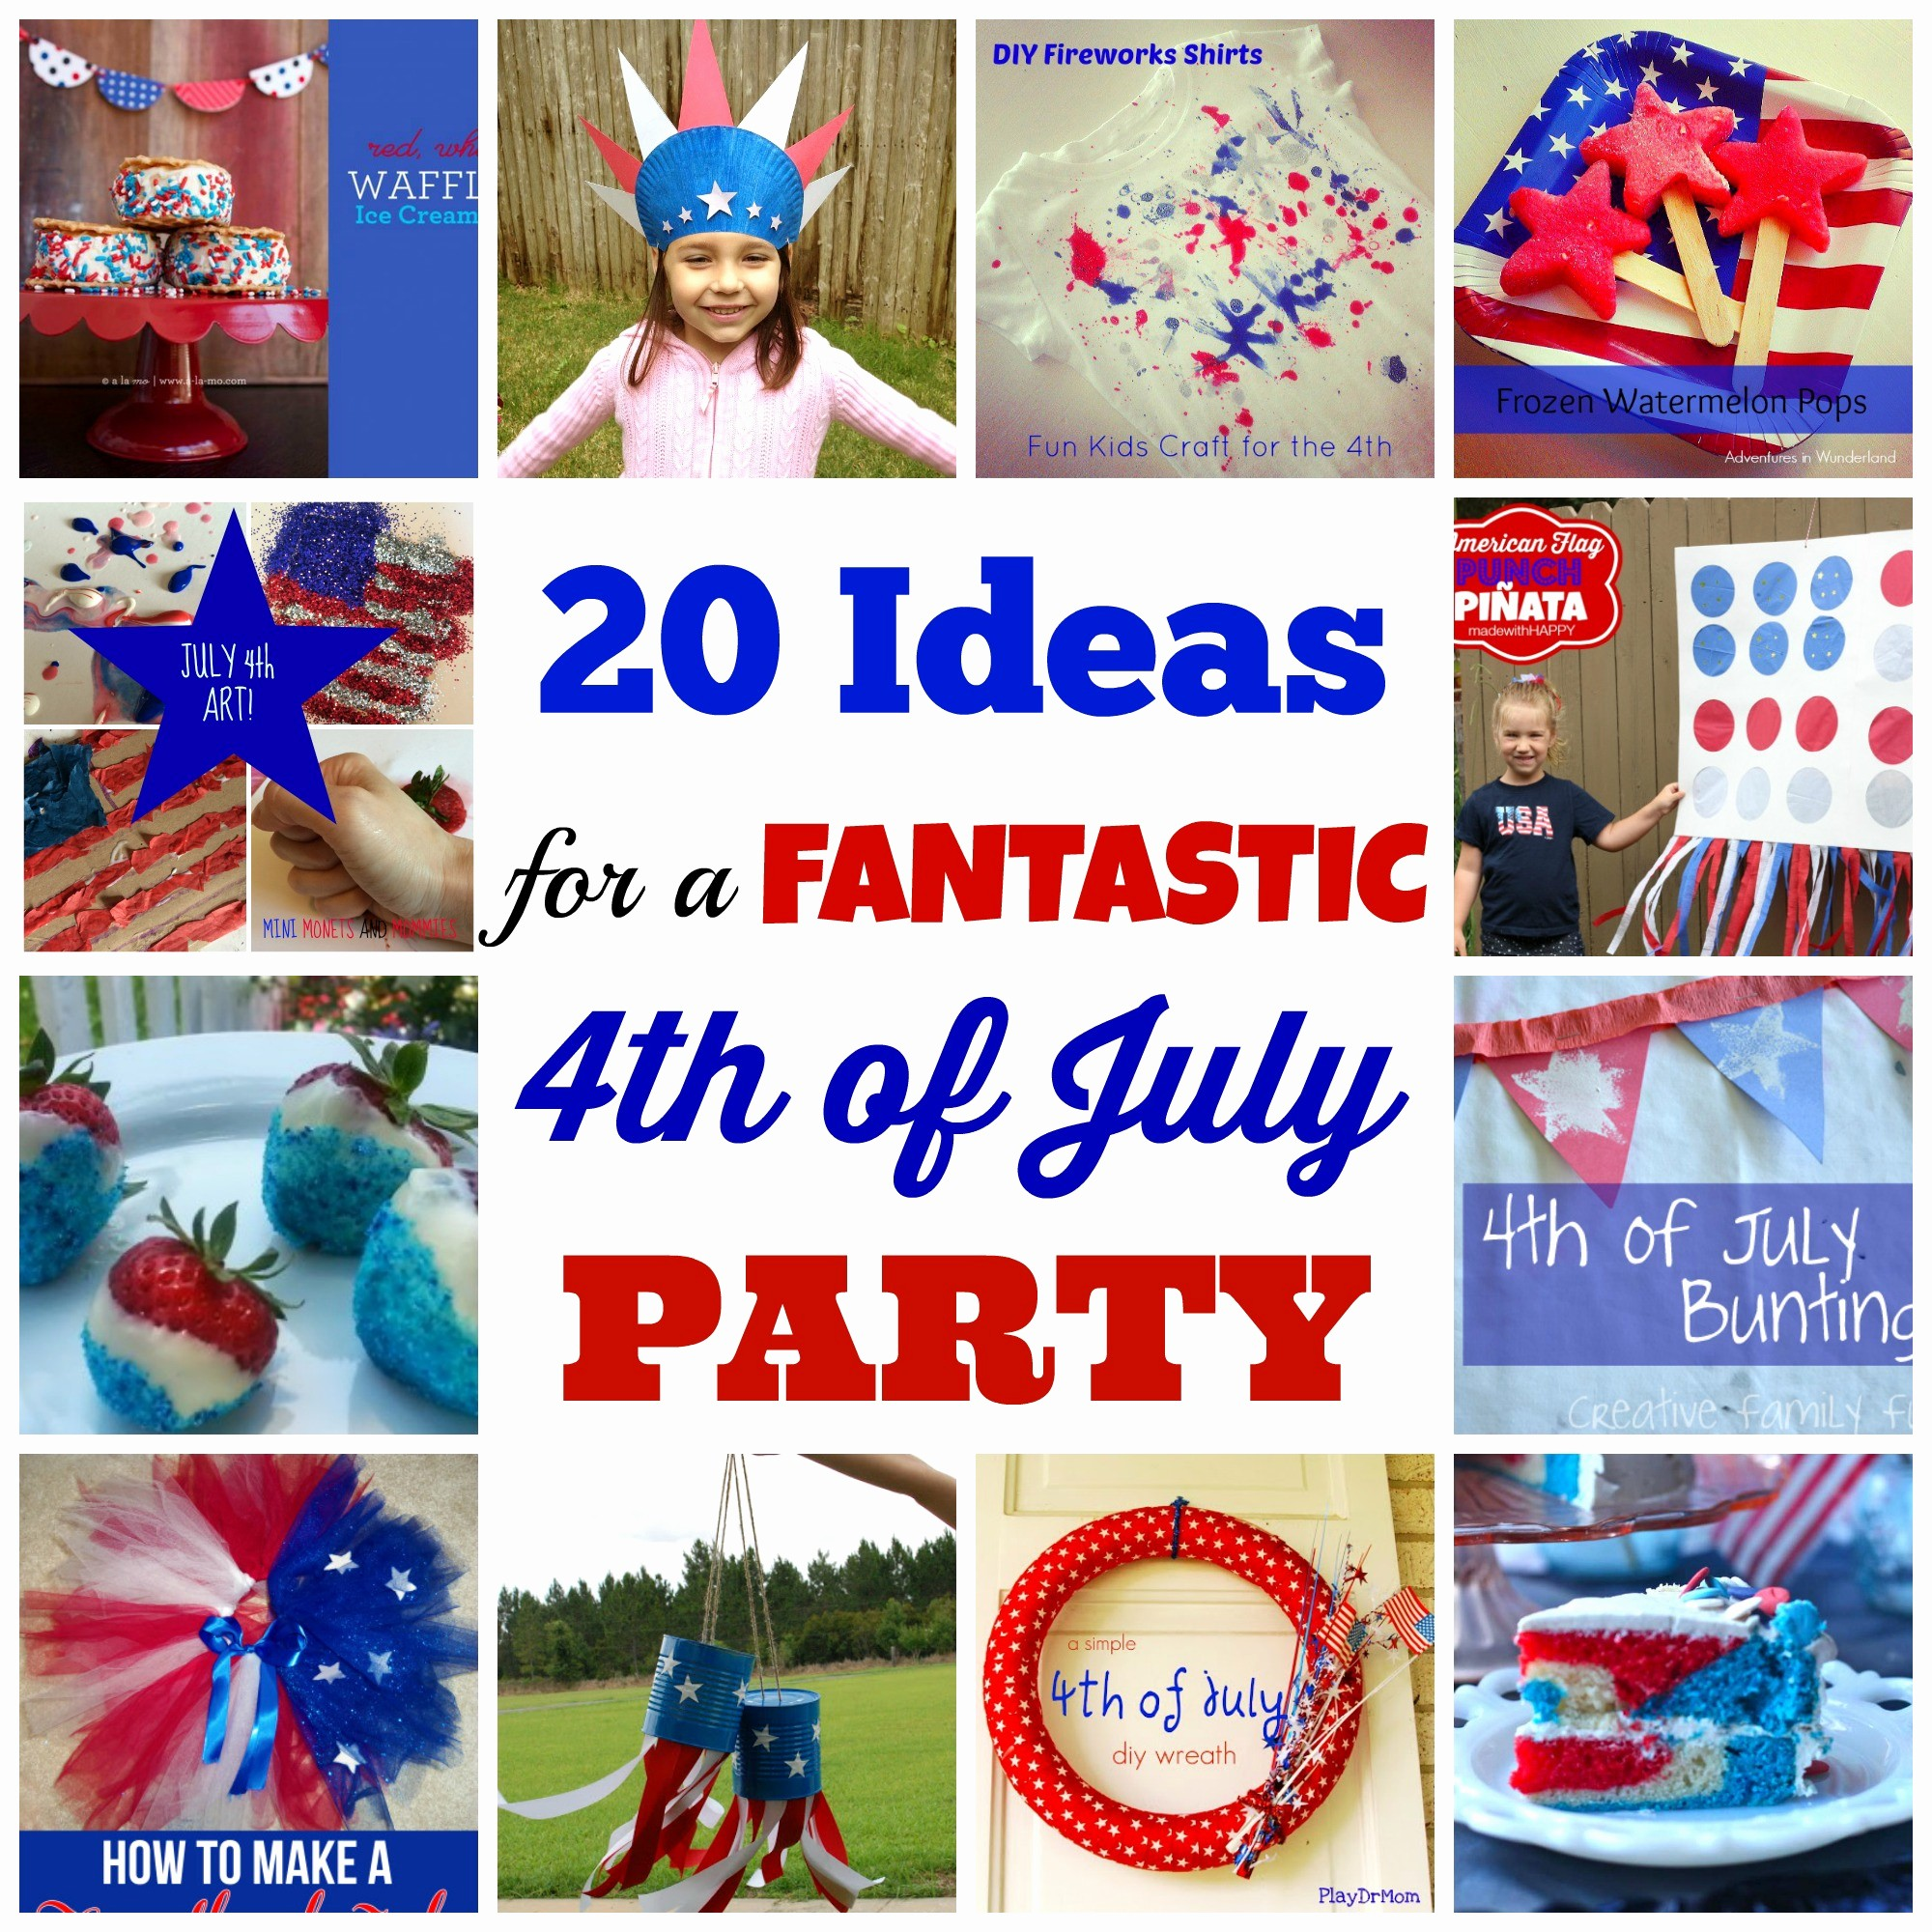 4th Of July Party Invites Lovely 20 Ideas for A Fantastic Fourth Of July Party